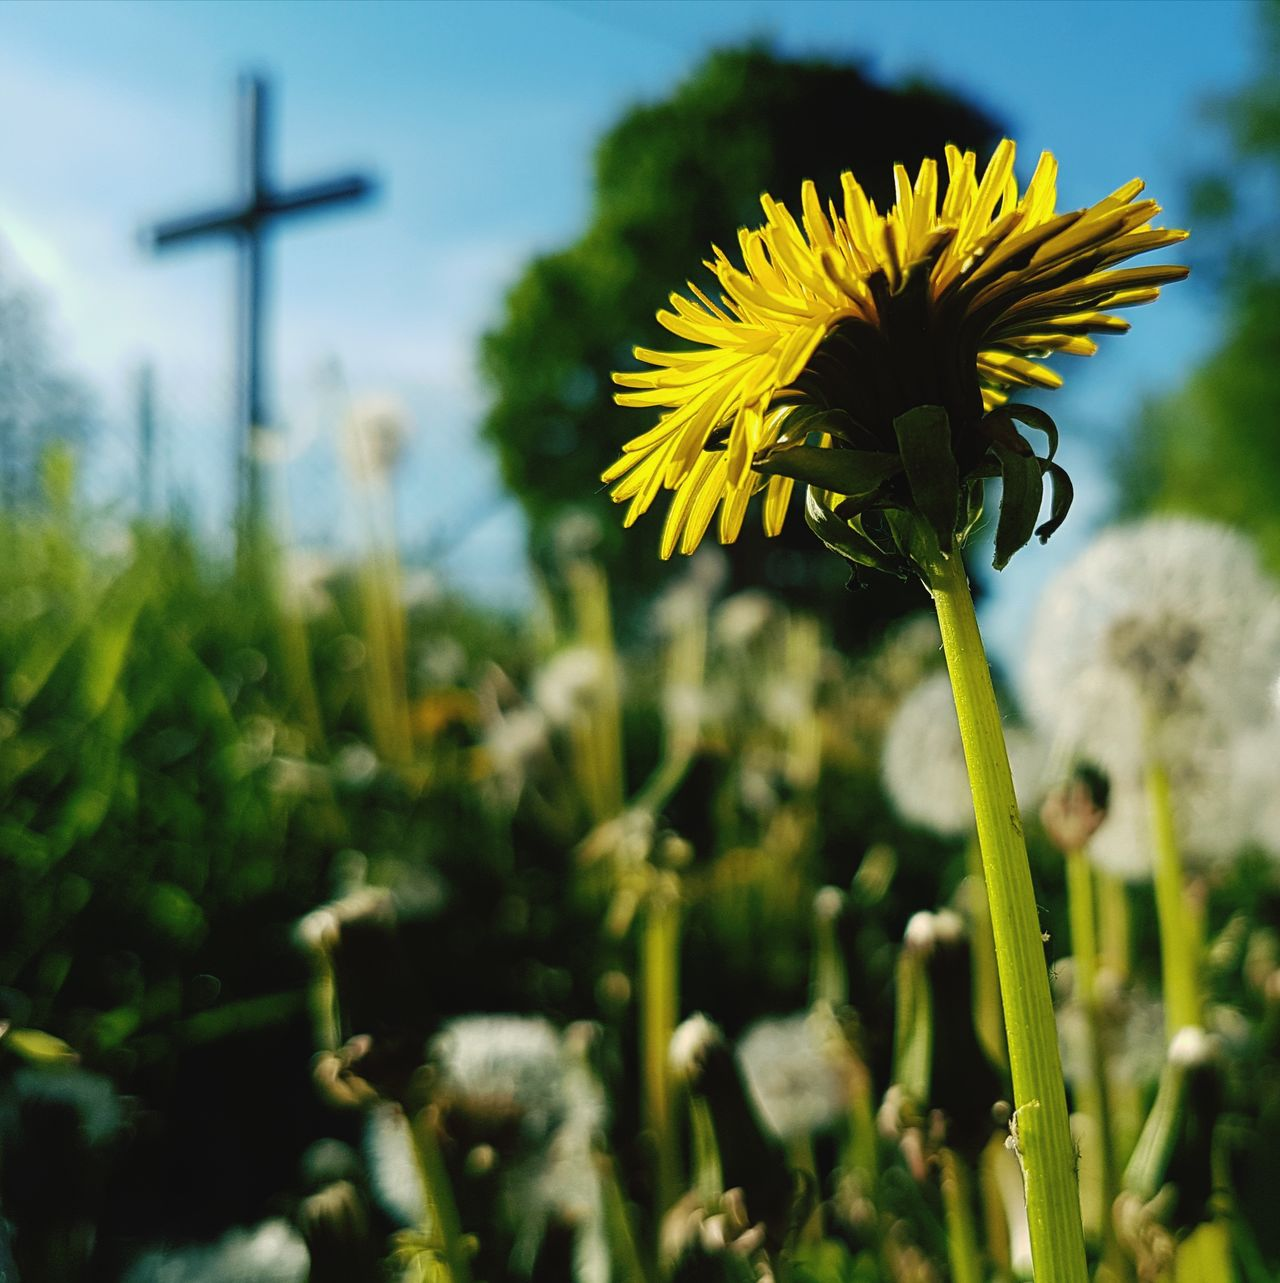 Sow thistle (sonchus) Flower Plant Nature Flower Head Yellow No People Close-up Outdoors Day Beauty In Nature Sky Freshness Fragility Rural Scene Rural Cross Christianity Christian